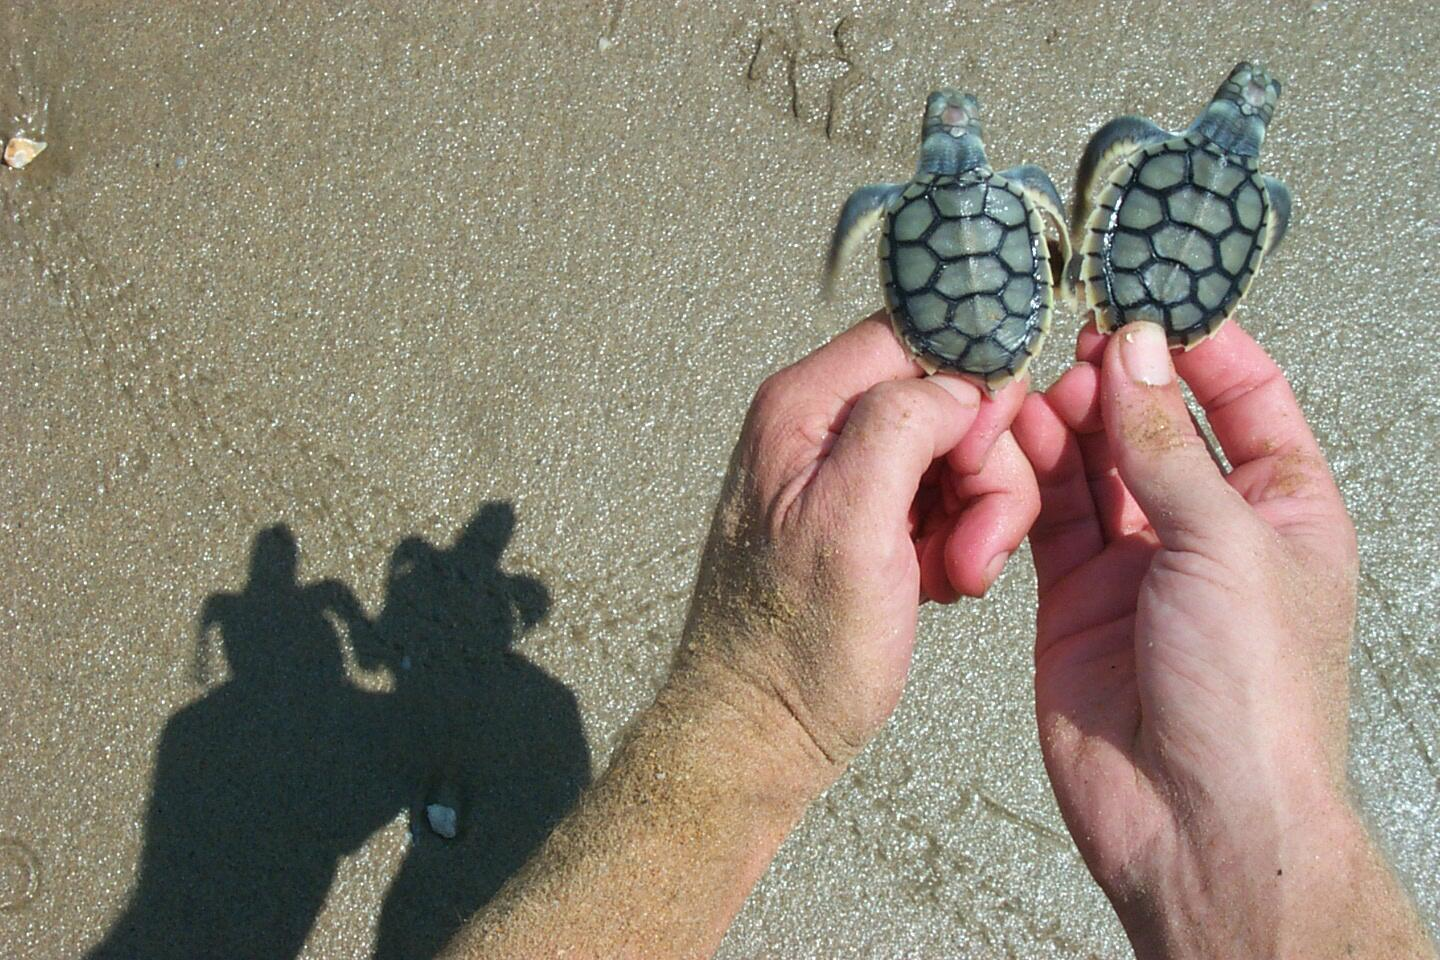 RT @turtlesatJCU: @WeAreAustralia 2 hatchling flatback sea turtles. These guys are as Aussie as the koala & breed all across the north. http://t.co/9PJnpk1R7q